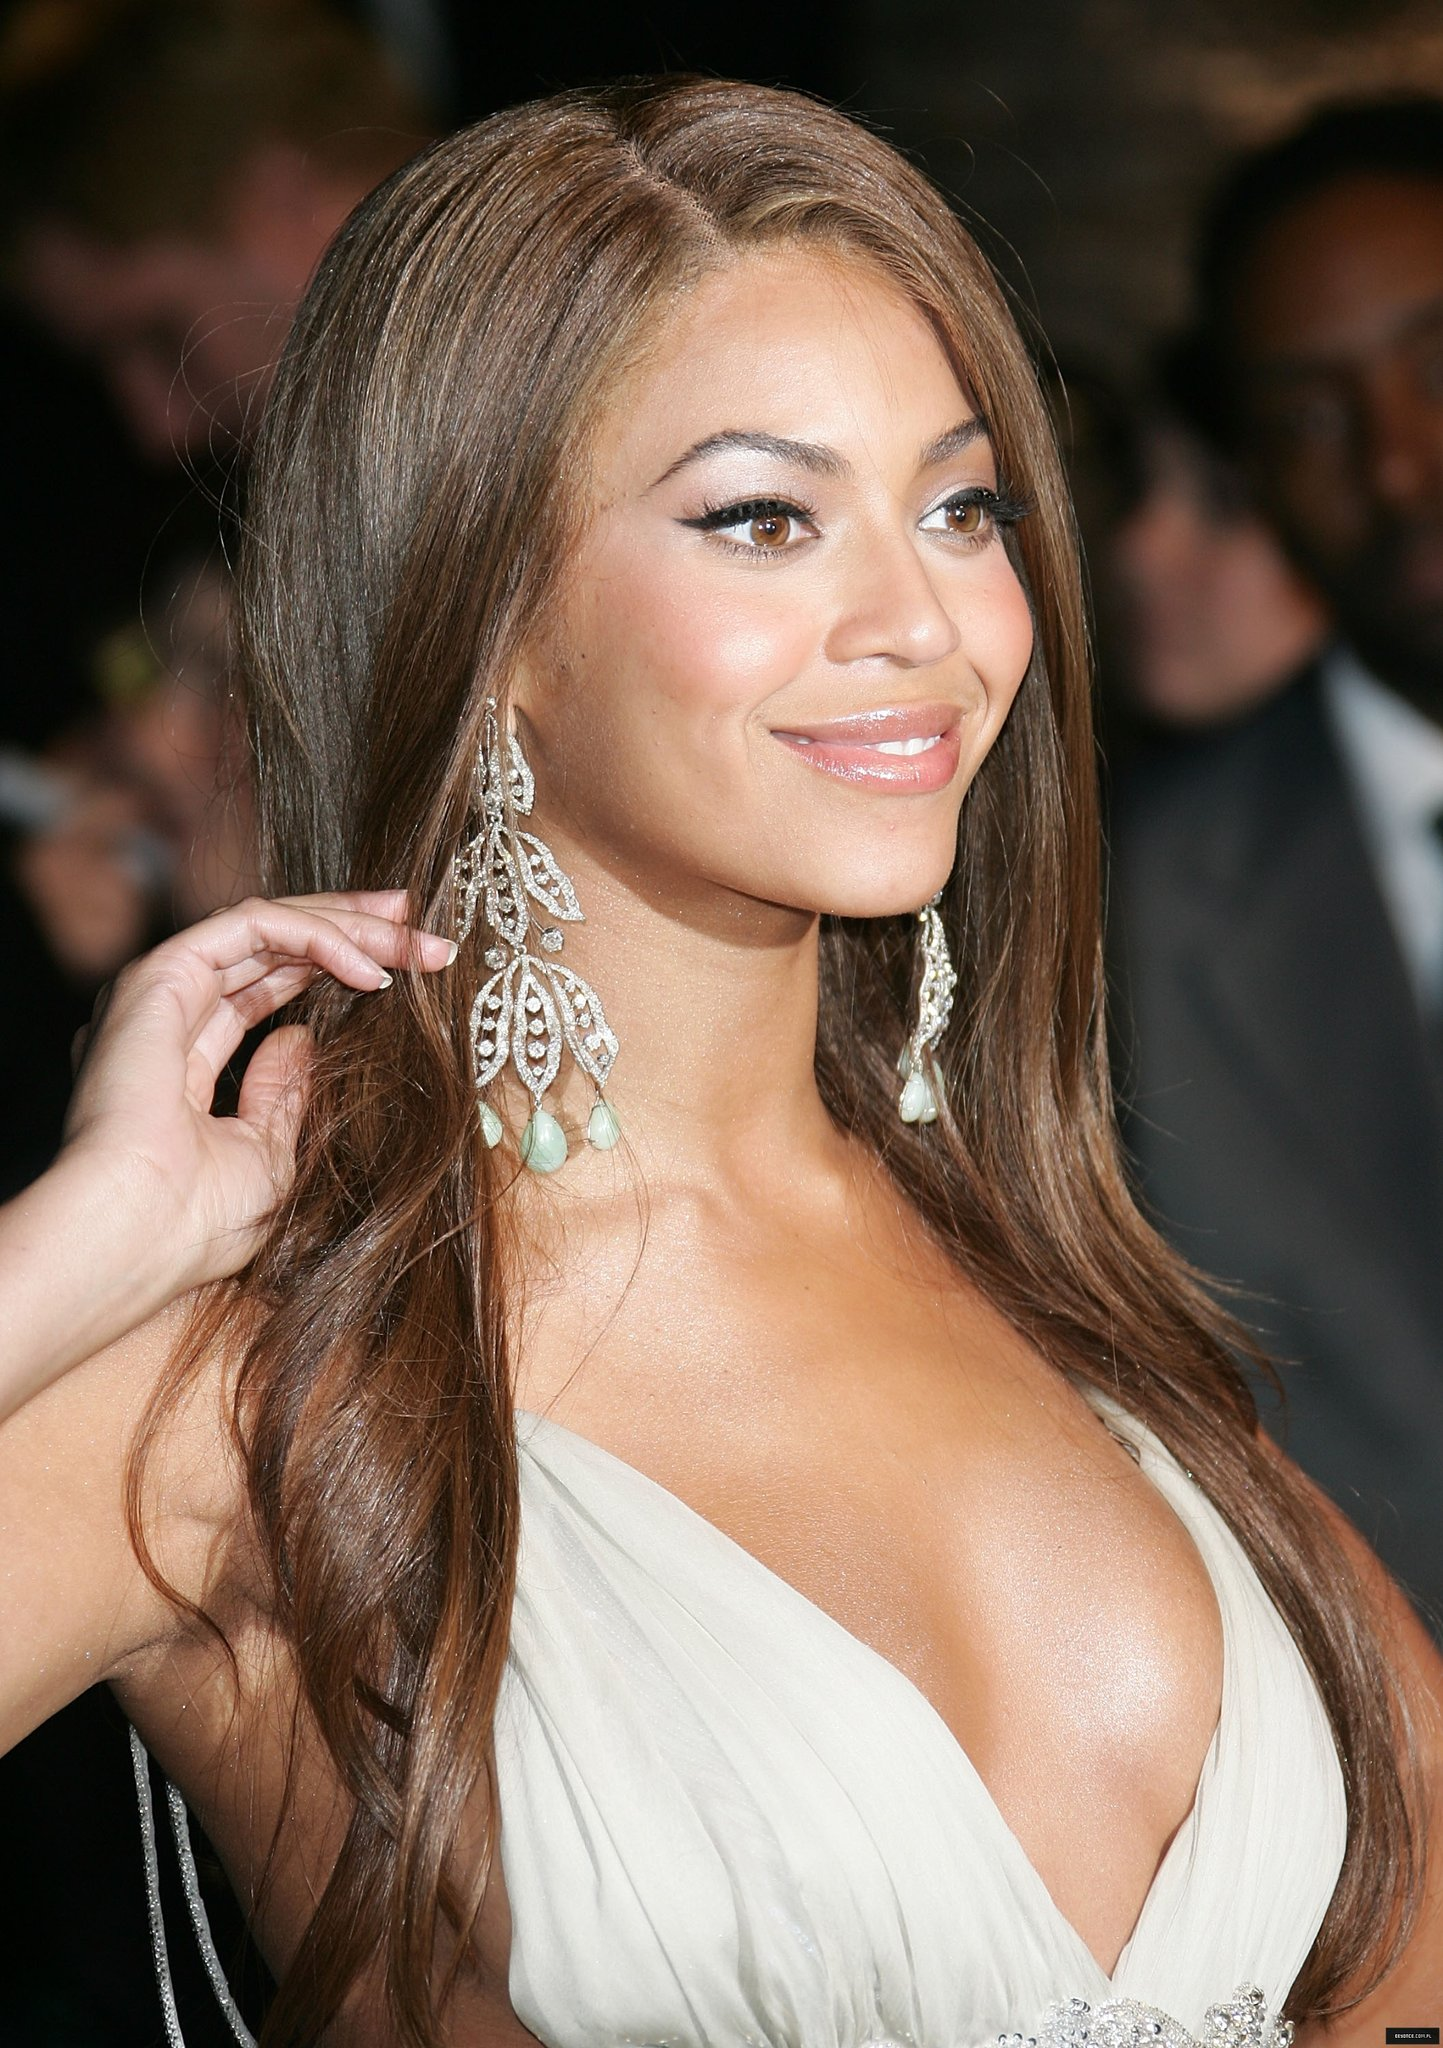 Beyoncé Giselle Looks Hot in this photo gallery